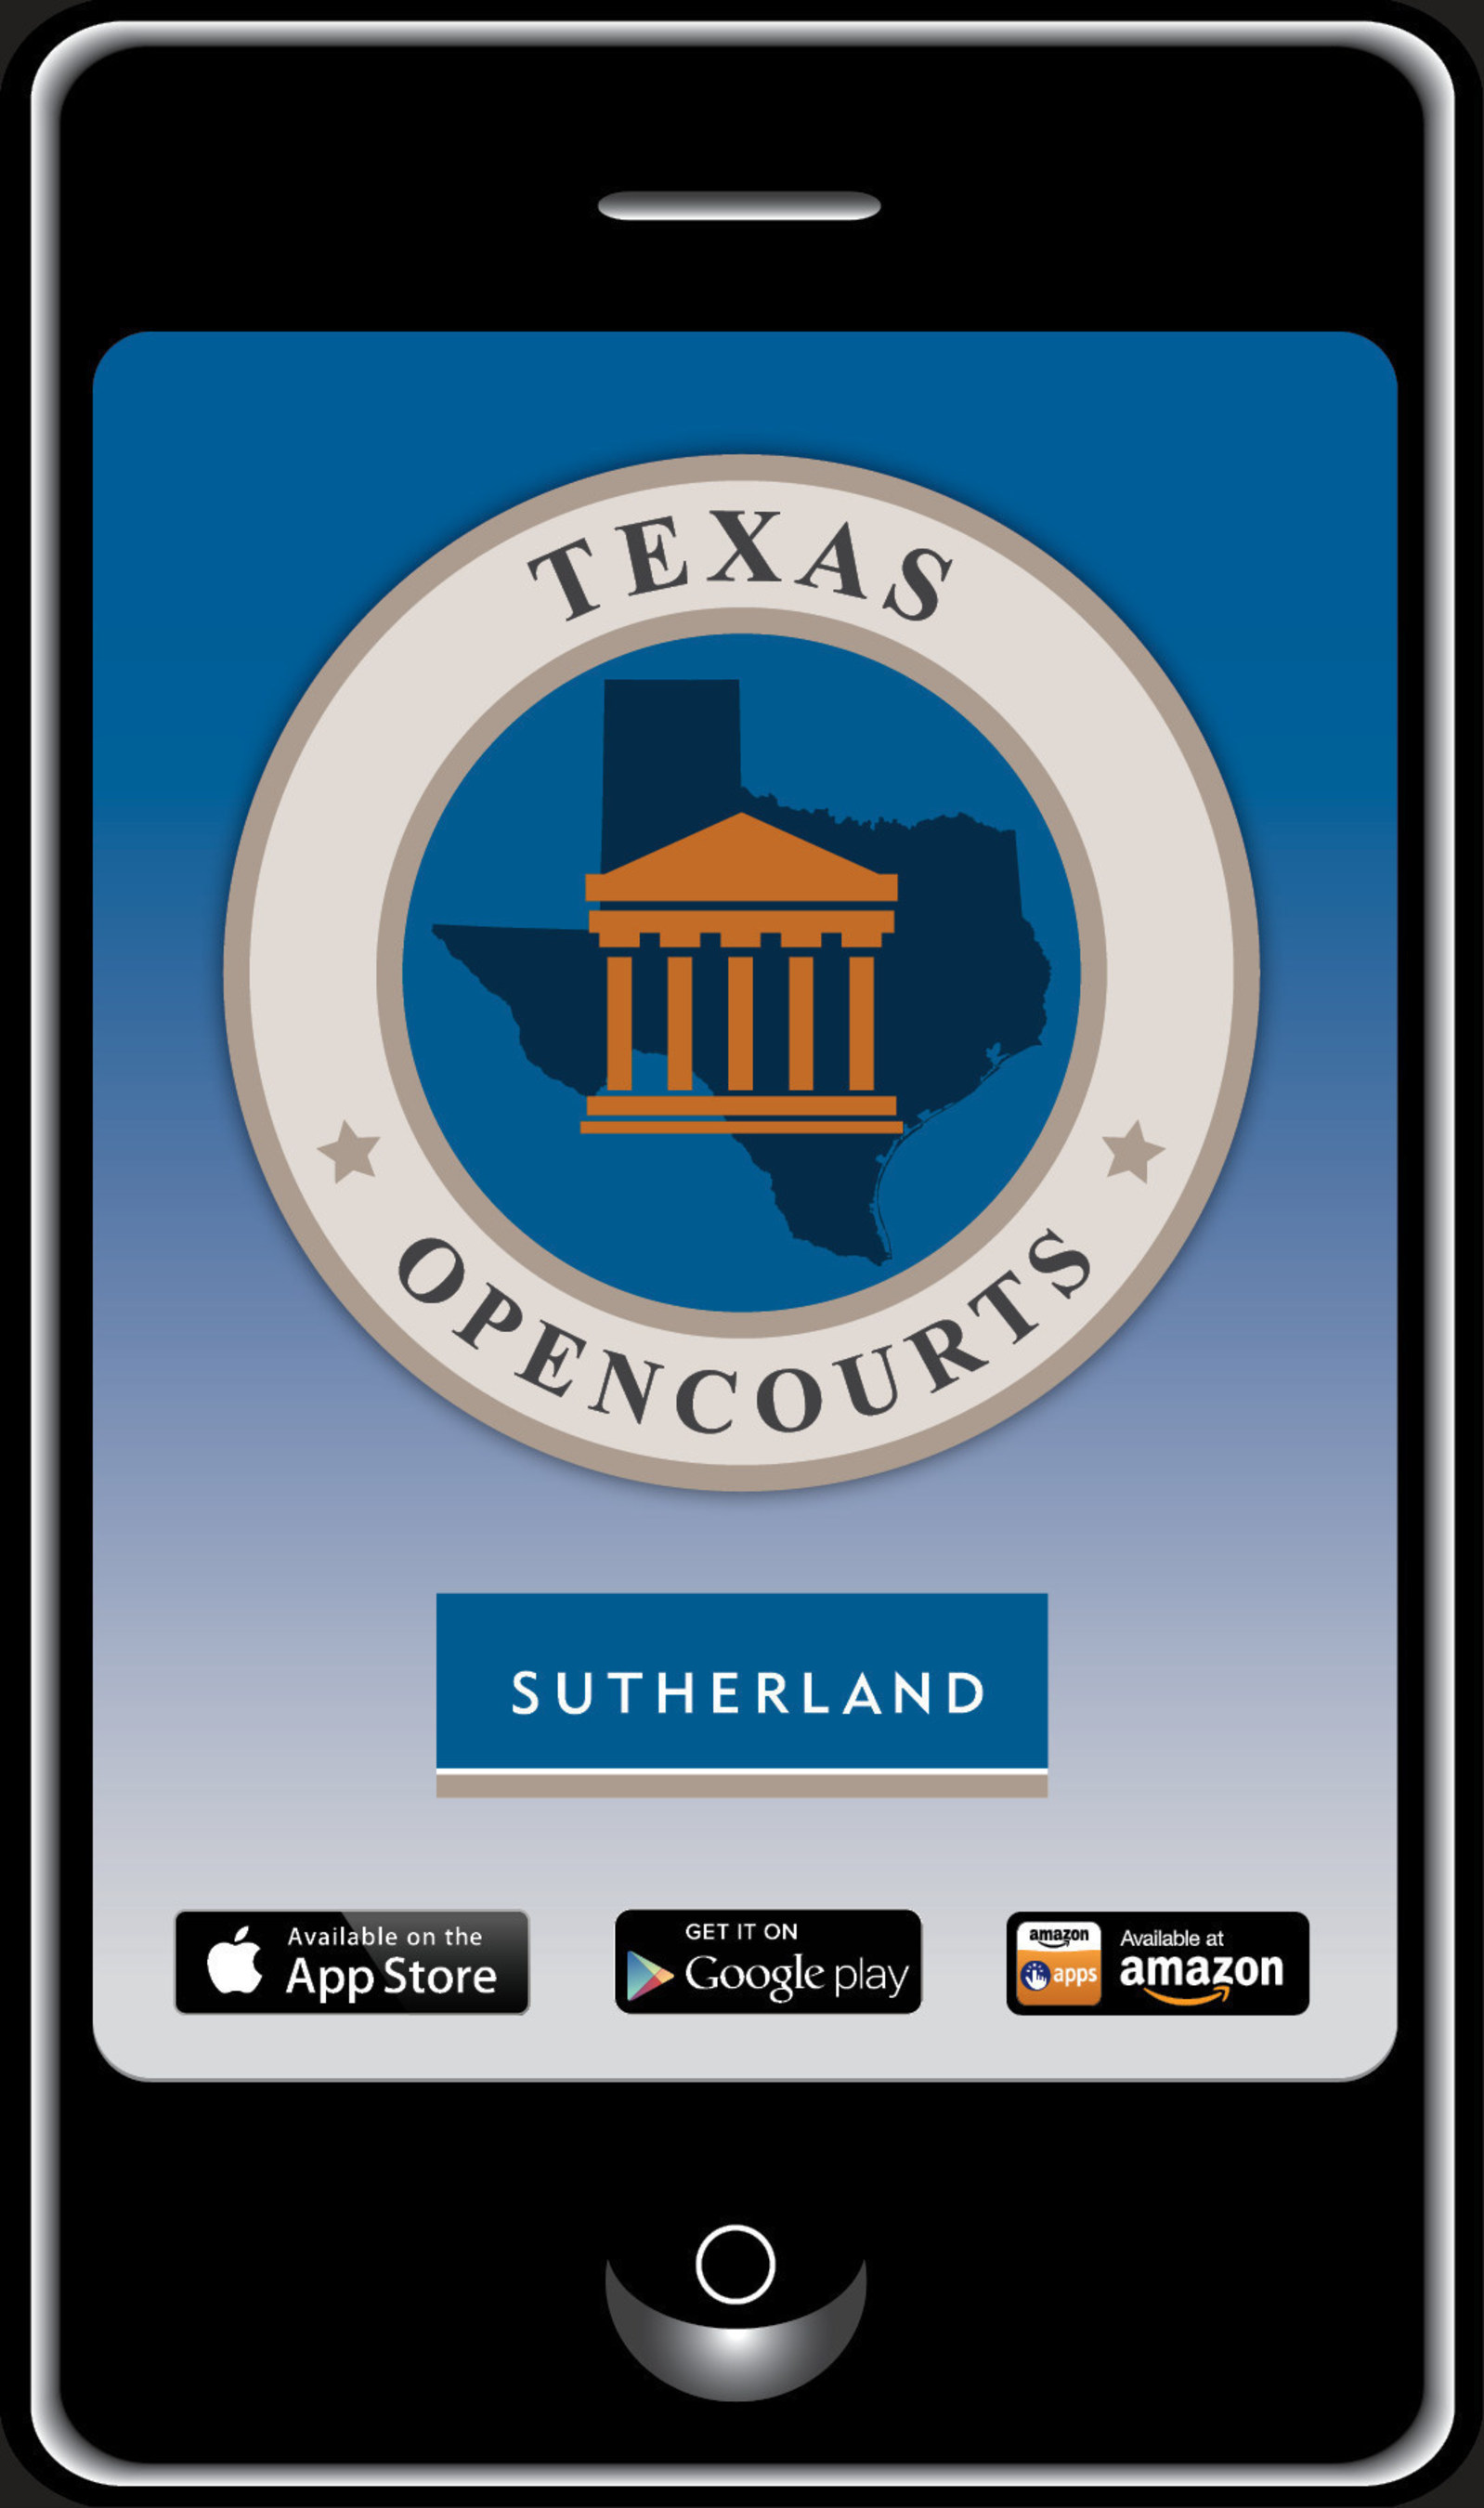 Sutherland Asbill & Brennan launches Texas openCourts app.